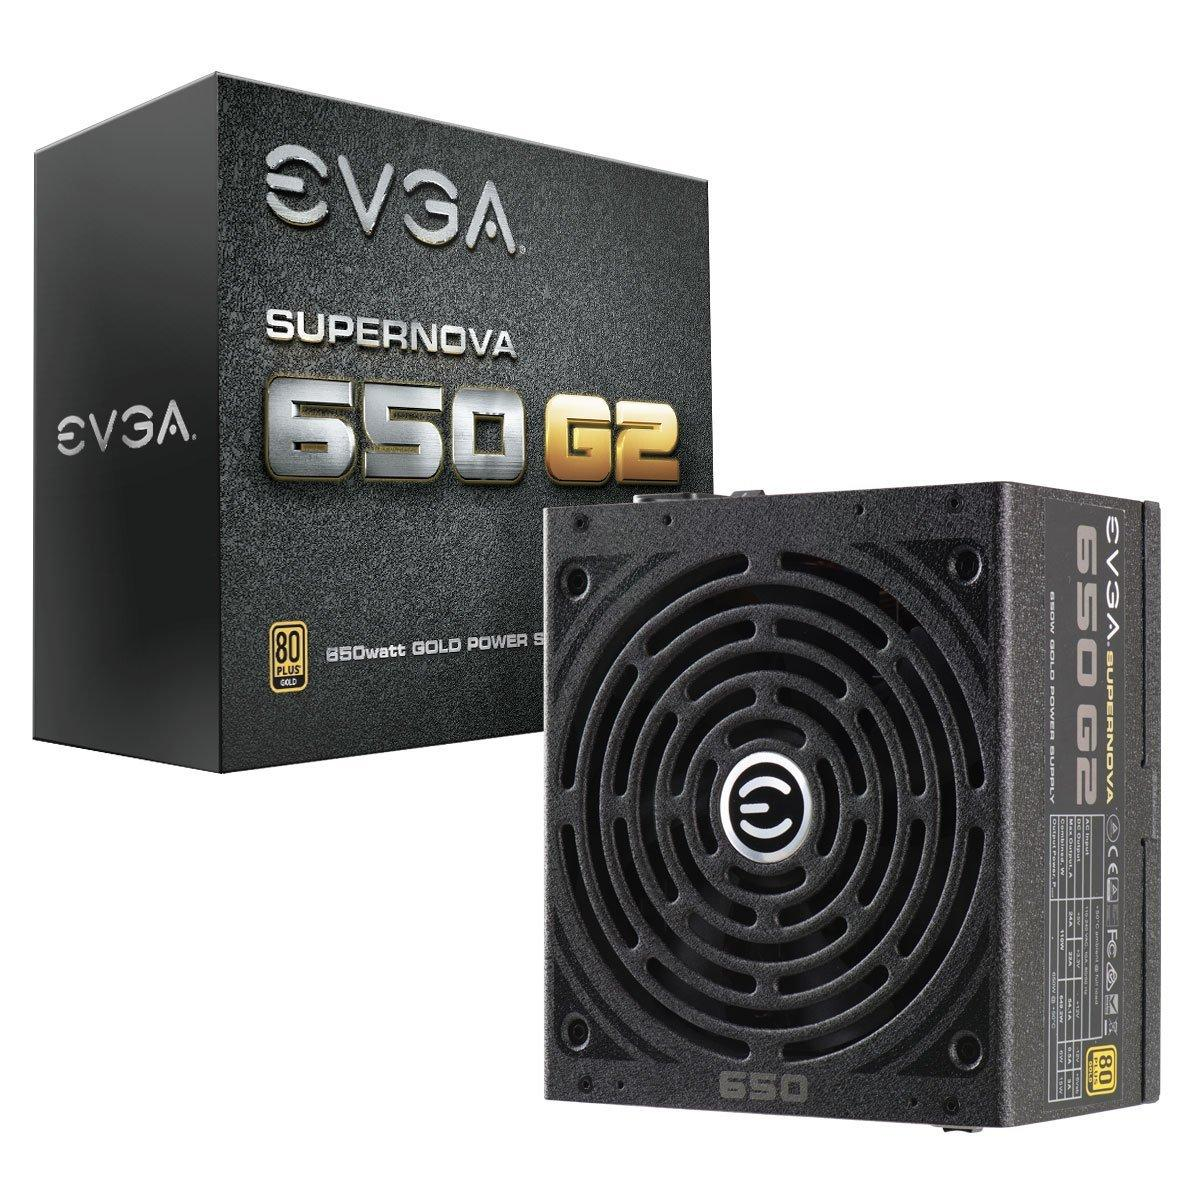 EVGA SuperNOVA 650 G2 80 Plus Gold Rated, Fully Modular ATX PSU